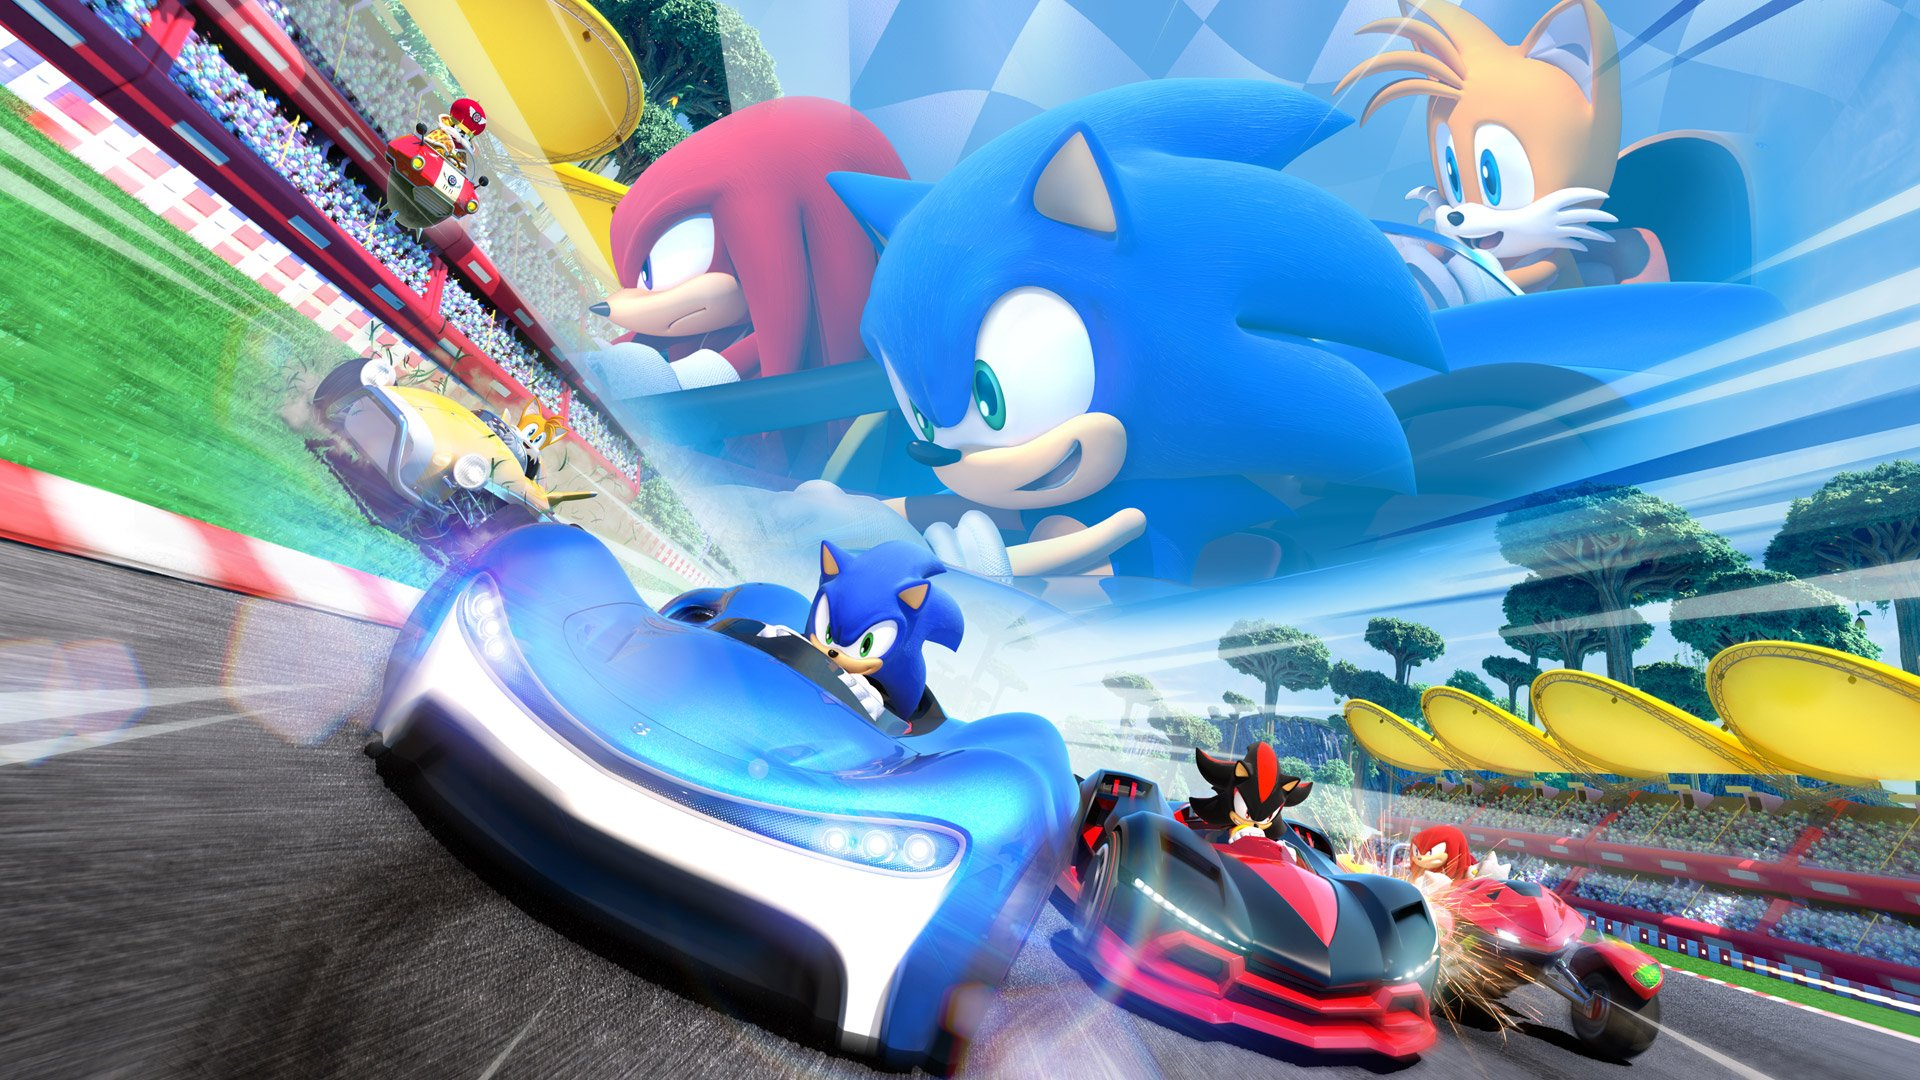 Credits can be used to purchase Mod Pods in Team Sonic Racing, with most activities awarding Credits upon race completion. The better you do in a race, the more Credits you'll earn.